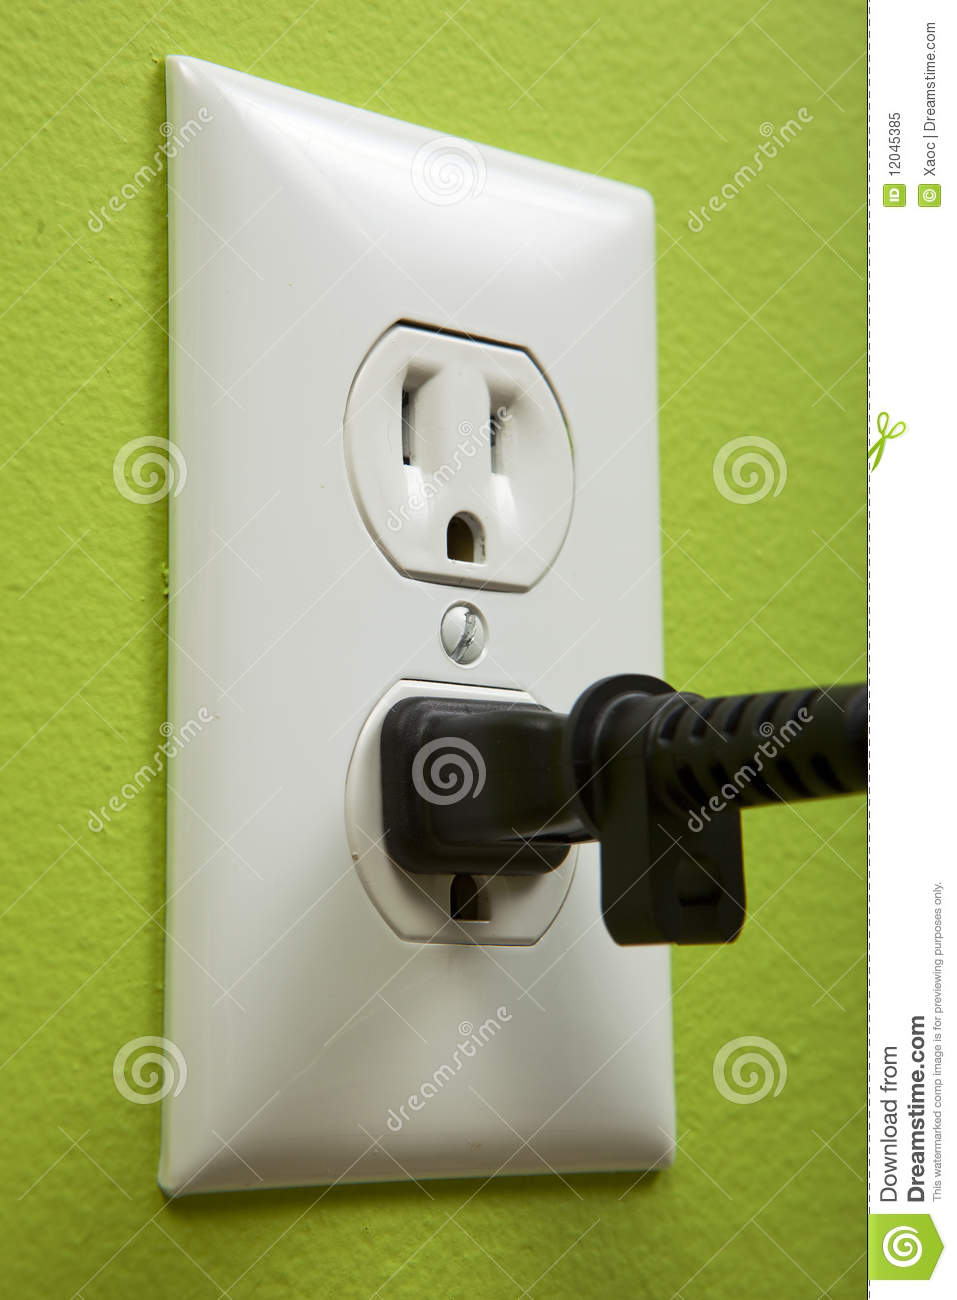 Wiring Up A Electrical Plug Free Download Wiring Diagrams Pictures